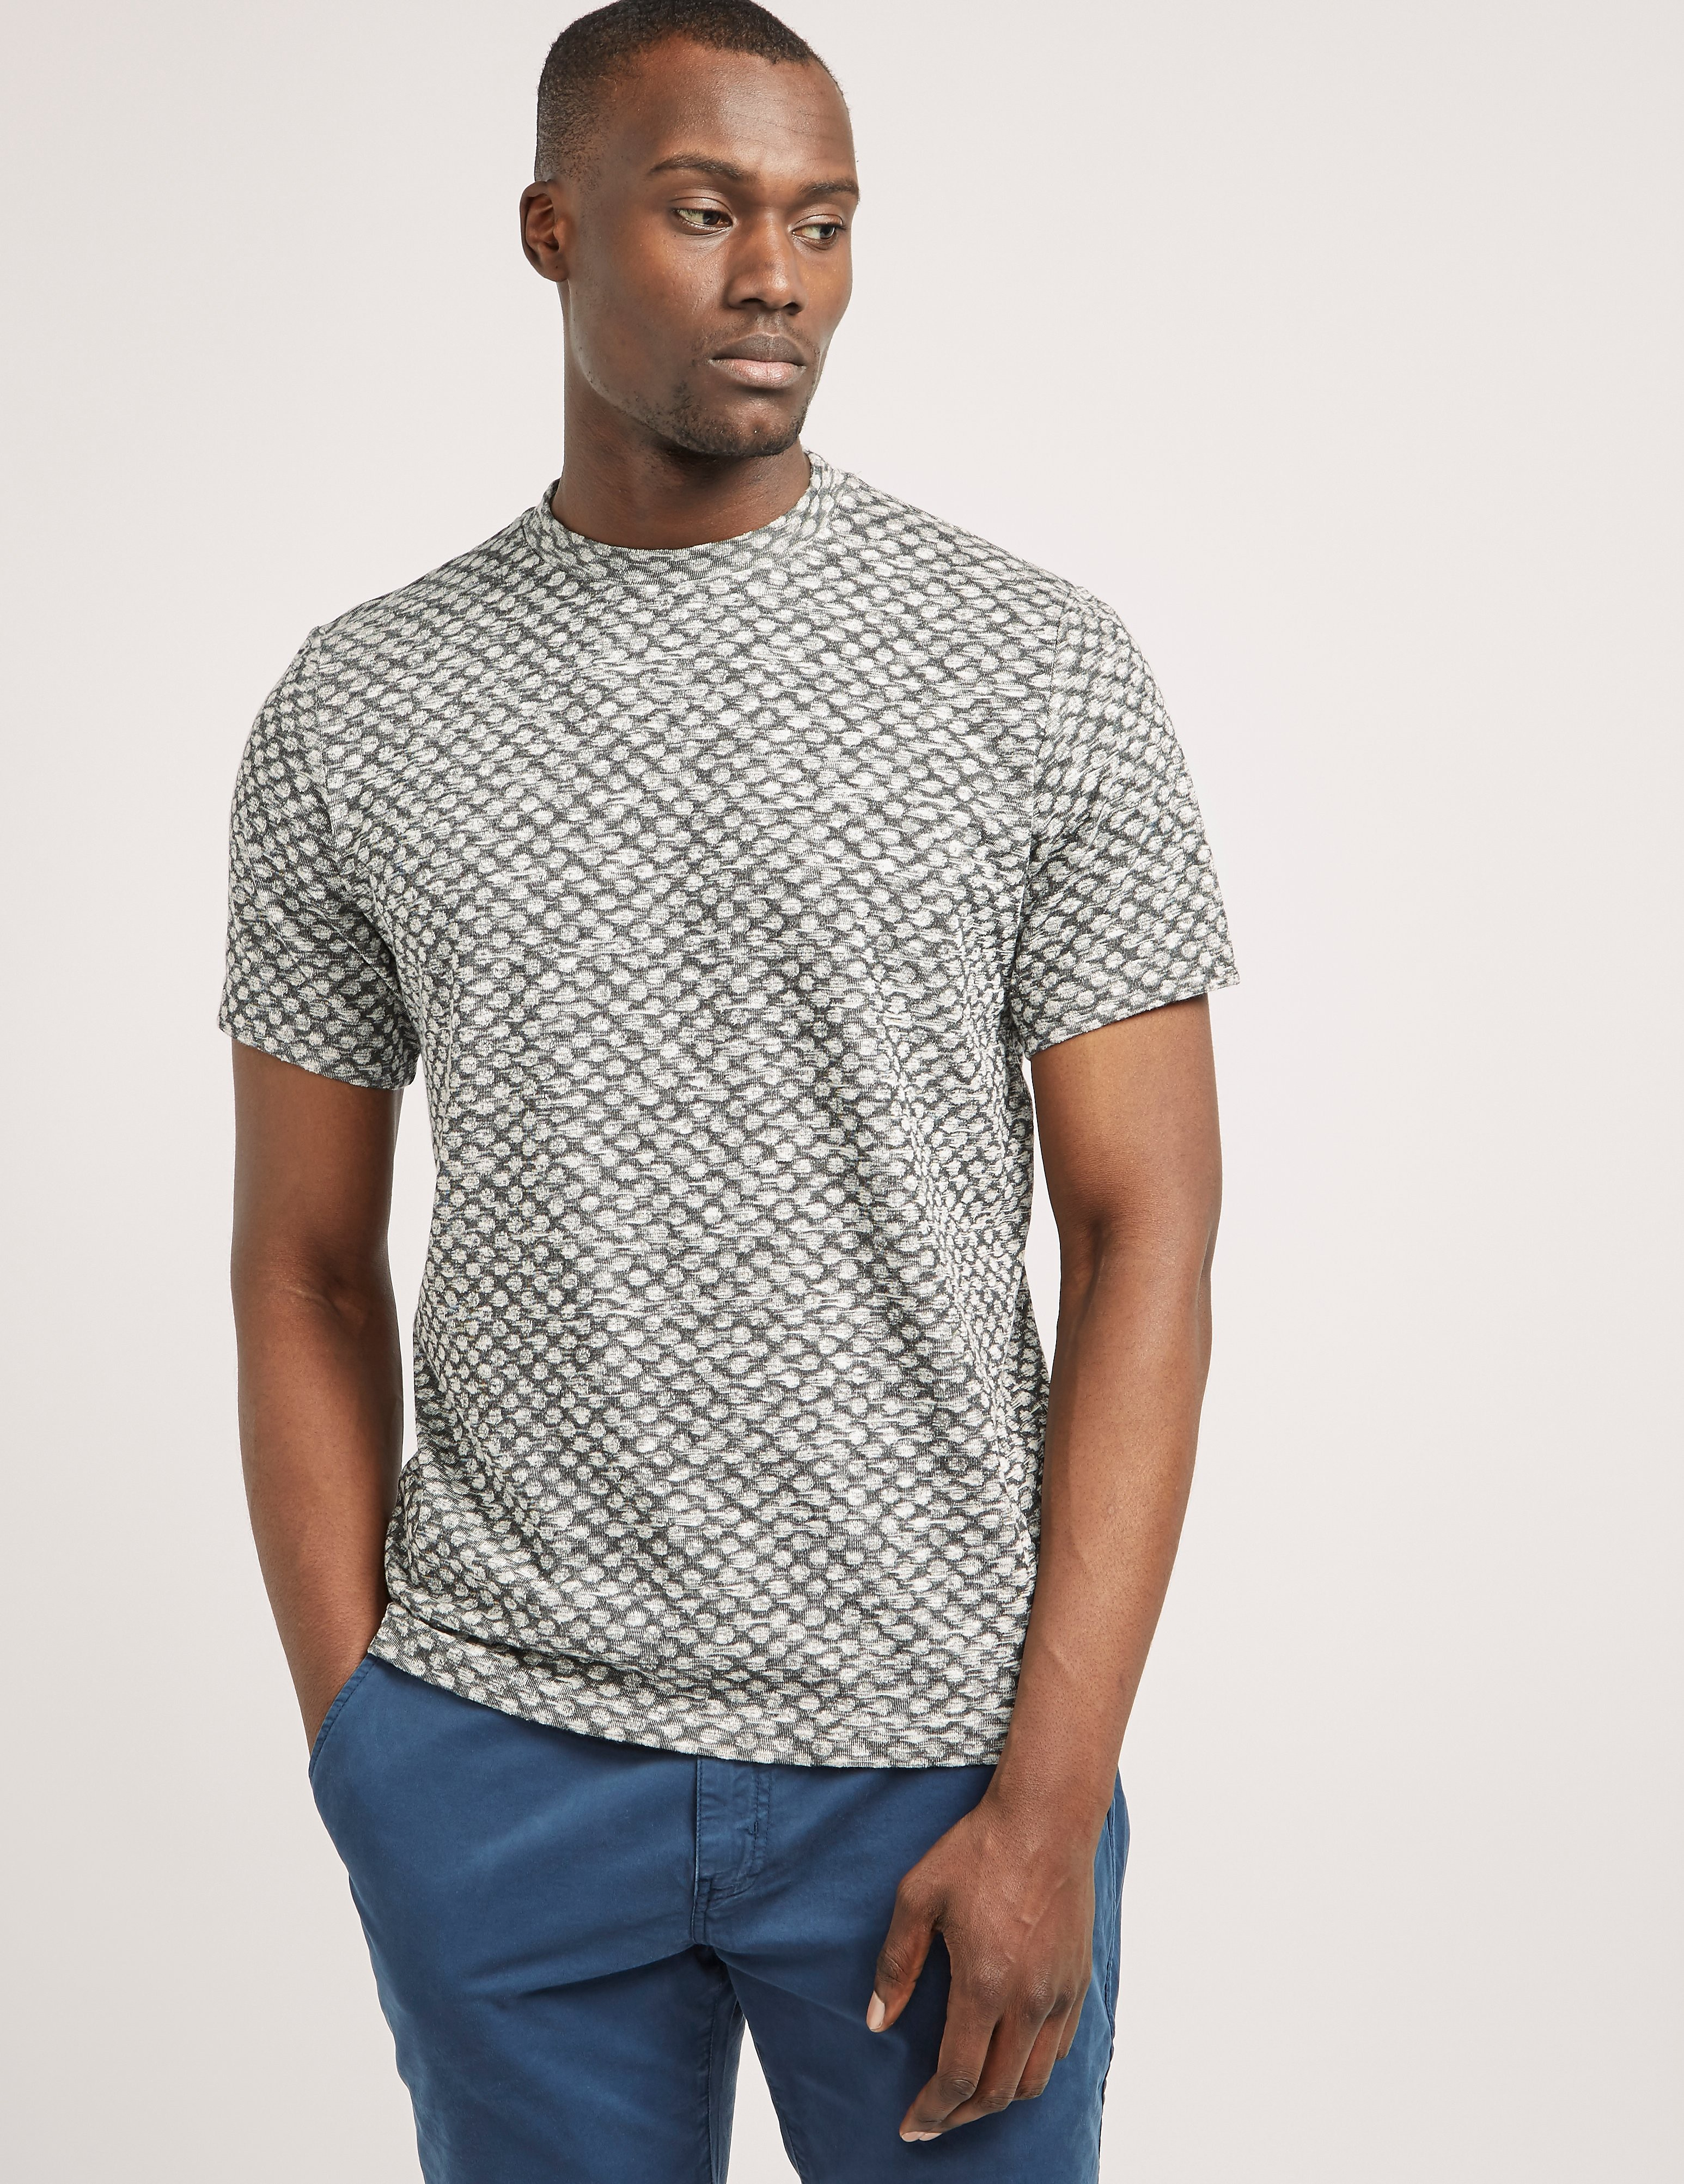 Paul Smith Jacquard Spot Short Sleeve T-Shirt